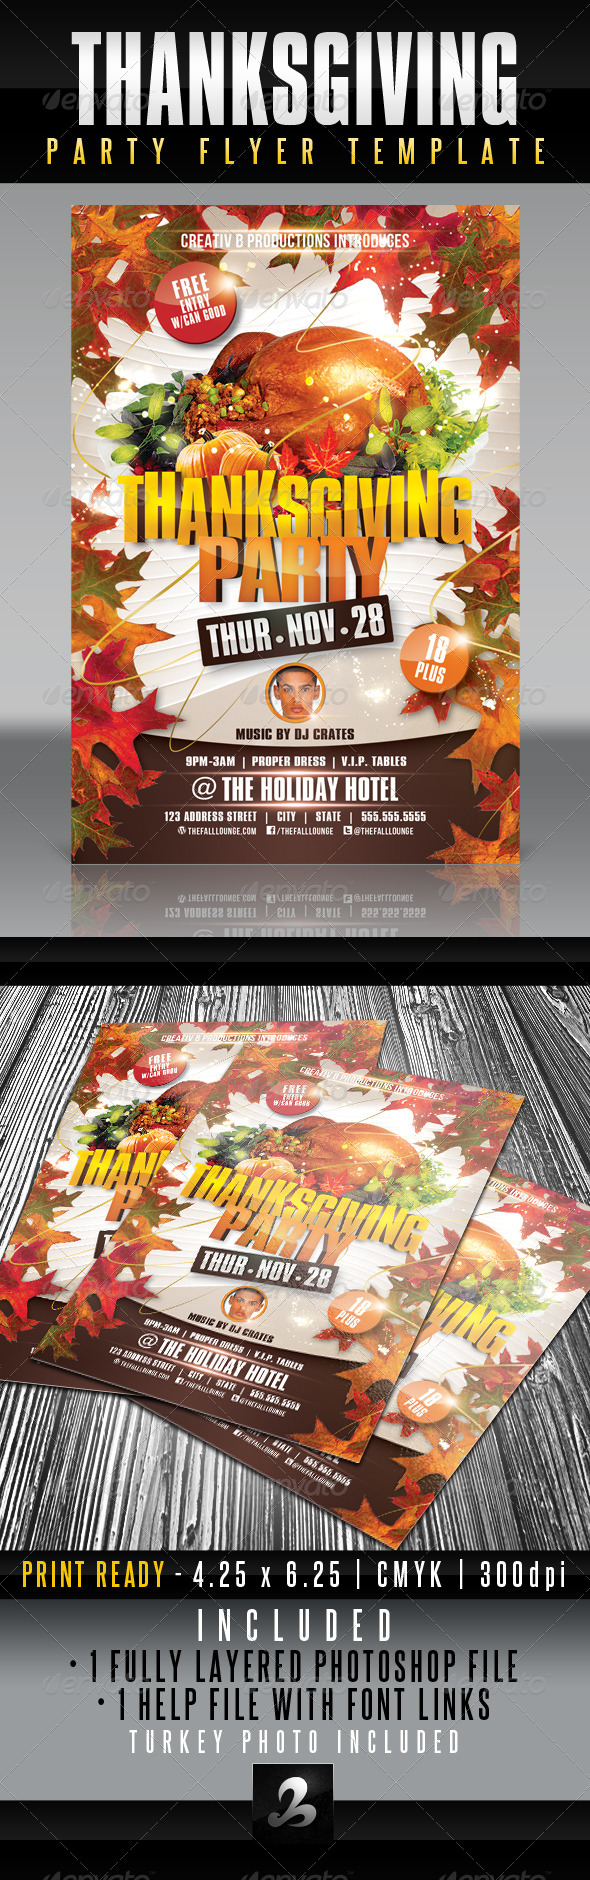 Thanksgiving Party Flyer Template - Holidays Events